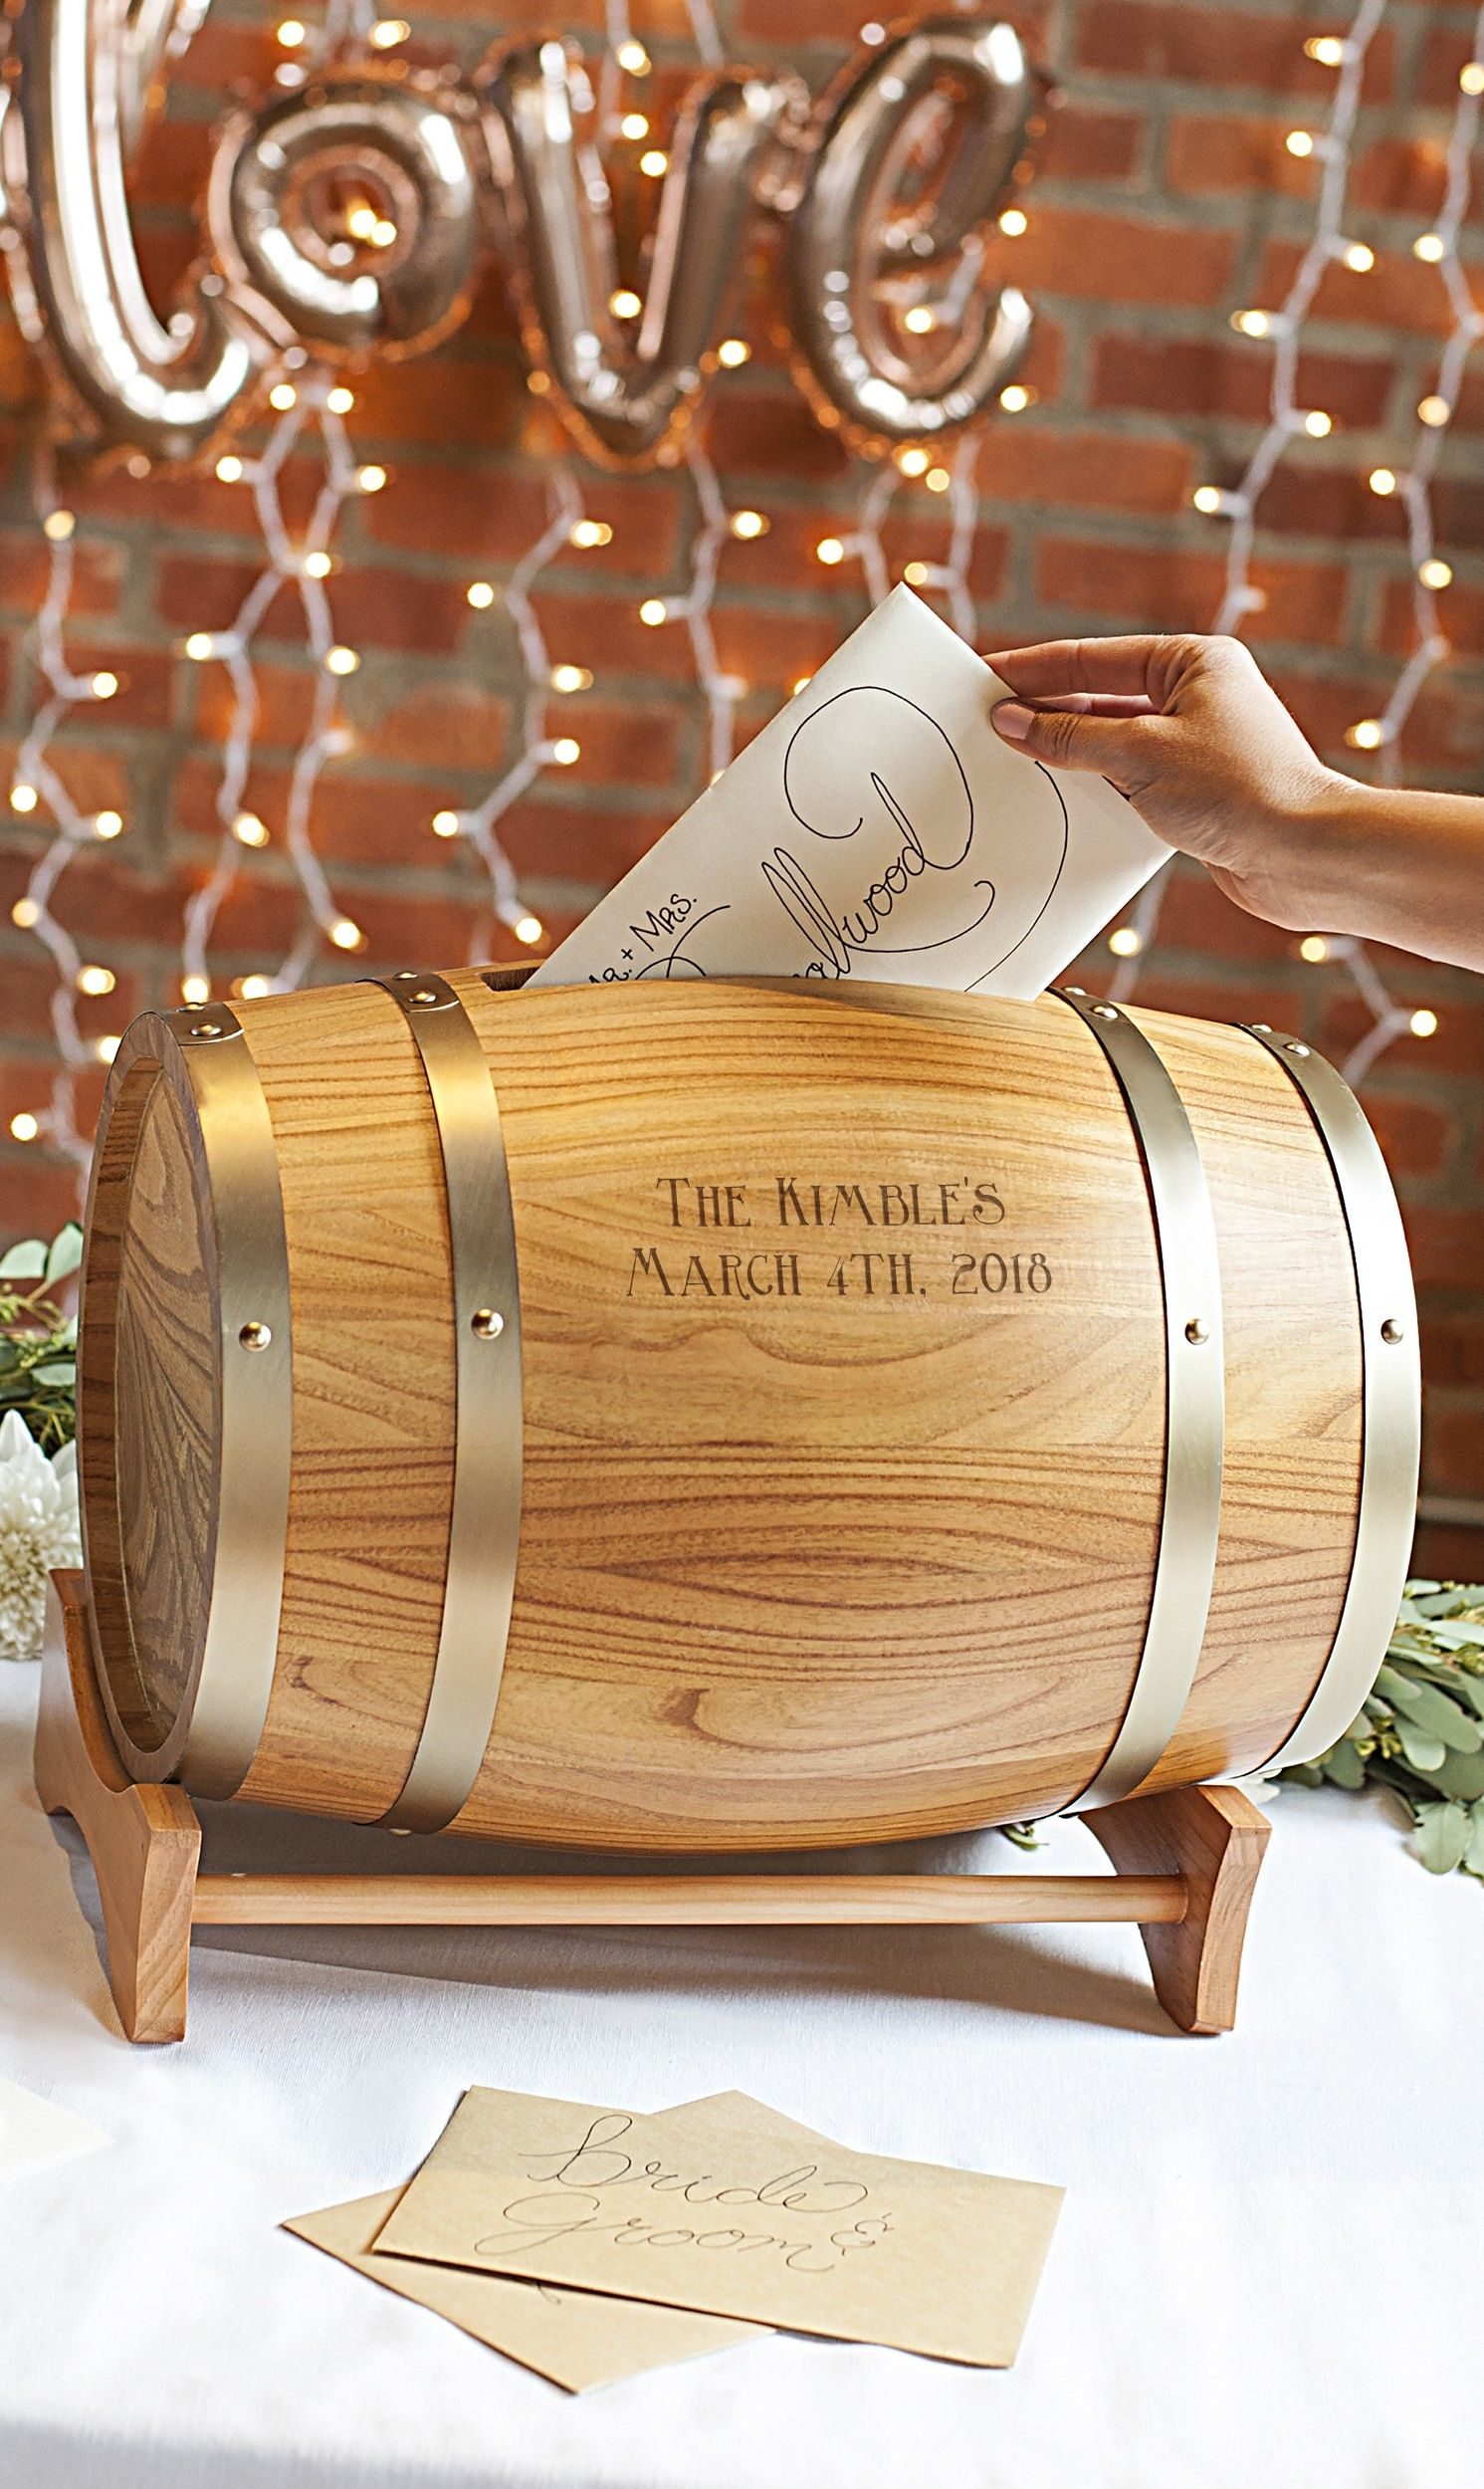 Personalized Wood Wine Barrel Wedding Gift Cards Holder Weddings